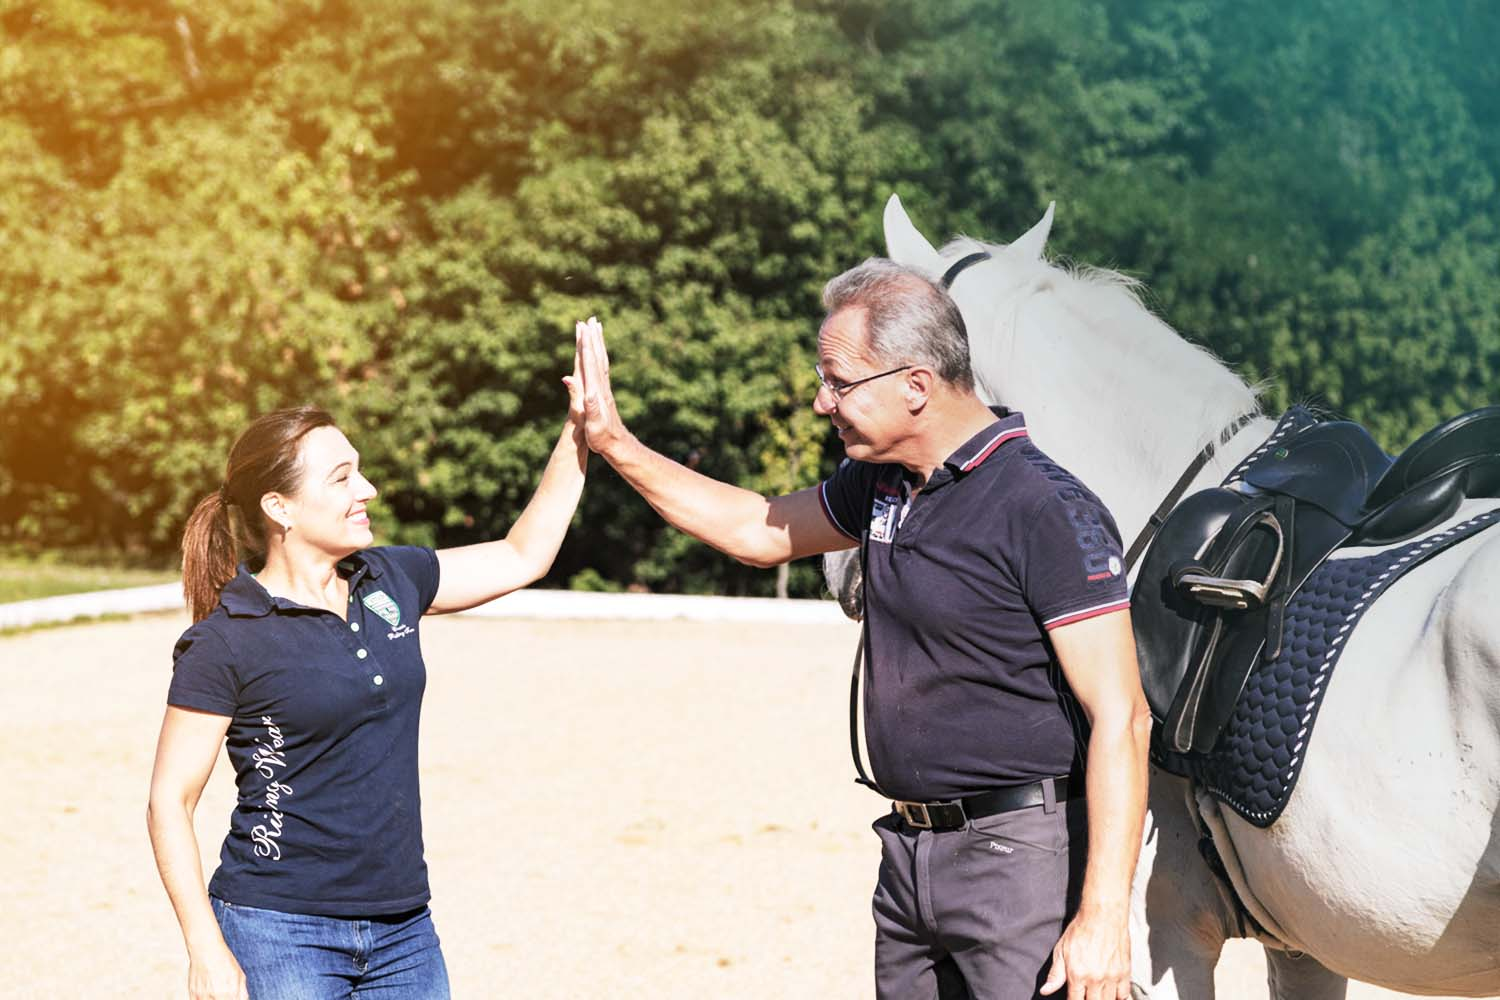 Hello! - I'd like to finally introduce ourselves to you. We are Shana and Thomas Ritter.We live in Germany where we work with riders of all skill levels, all disciplines, and all types of horses. We have taught throughout USA, Canada, Germany, Austria, The Netherlands, and Switzerland. We have published two books on dressage, one based on biomechanics and the other about the work on the longrein. Our next soon-to-be released book is a systematic process to train the Flying Changes.